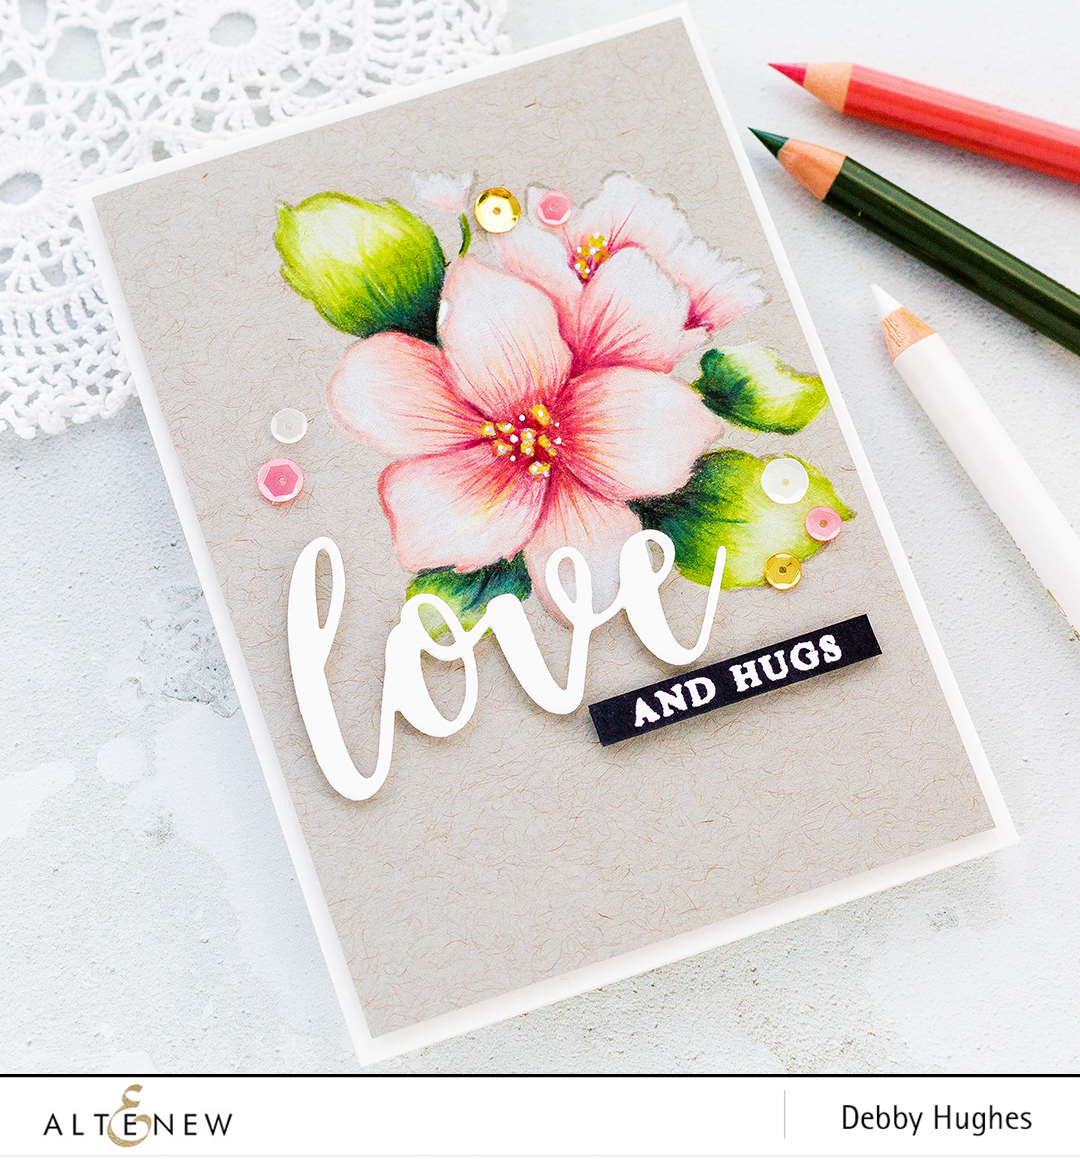 Colourful floral focal point coloured with pencils on kraft. Handmade card by Debby Hughes. Find out more here: http://wp.me/p6Dps1-5Ec